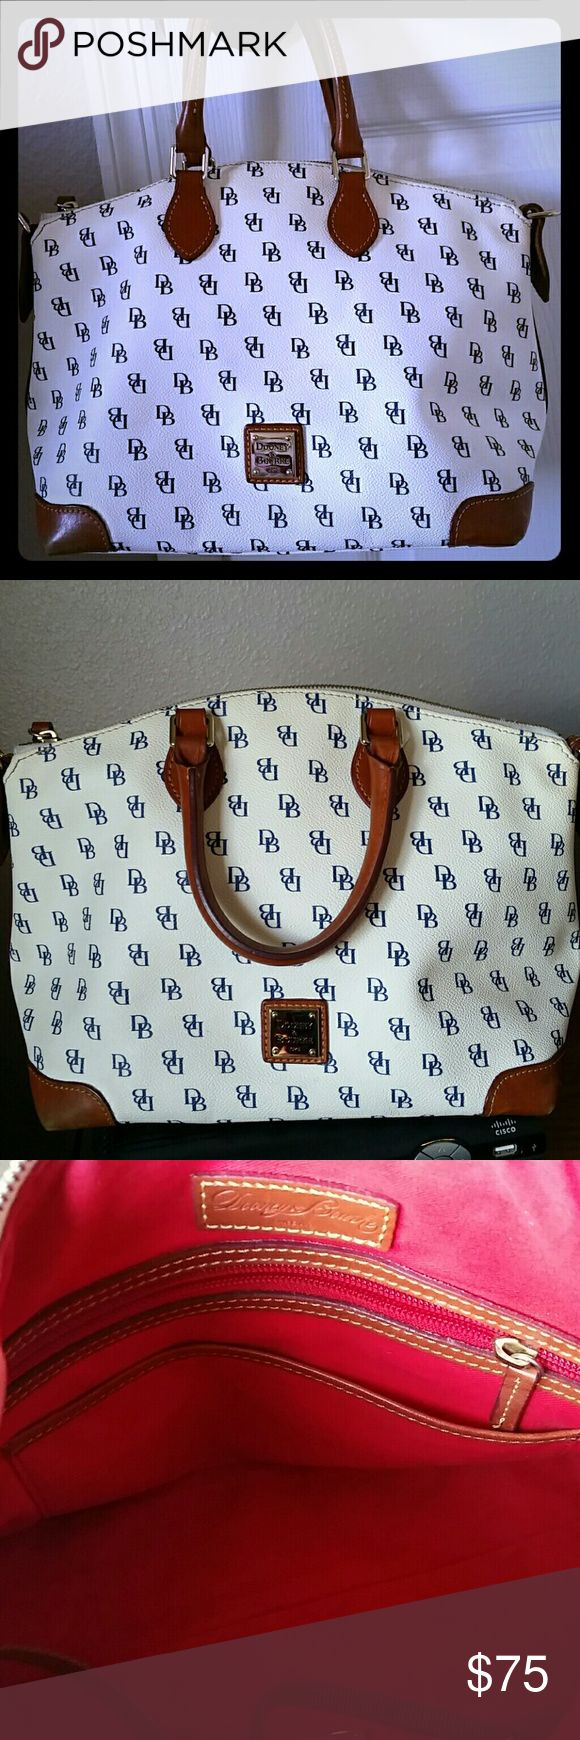 Dooney and Bourke Bag White Pebbled Leather with Navy DB Lettering Douney And Bourke  Bags Satchels